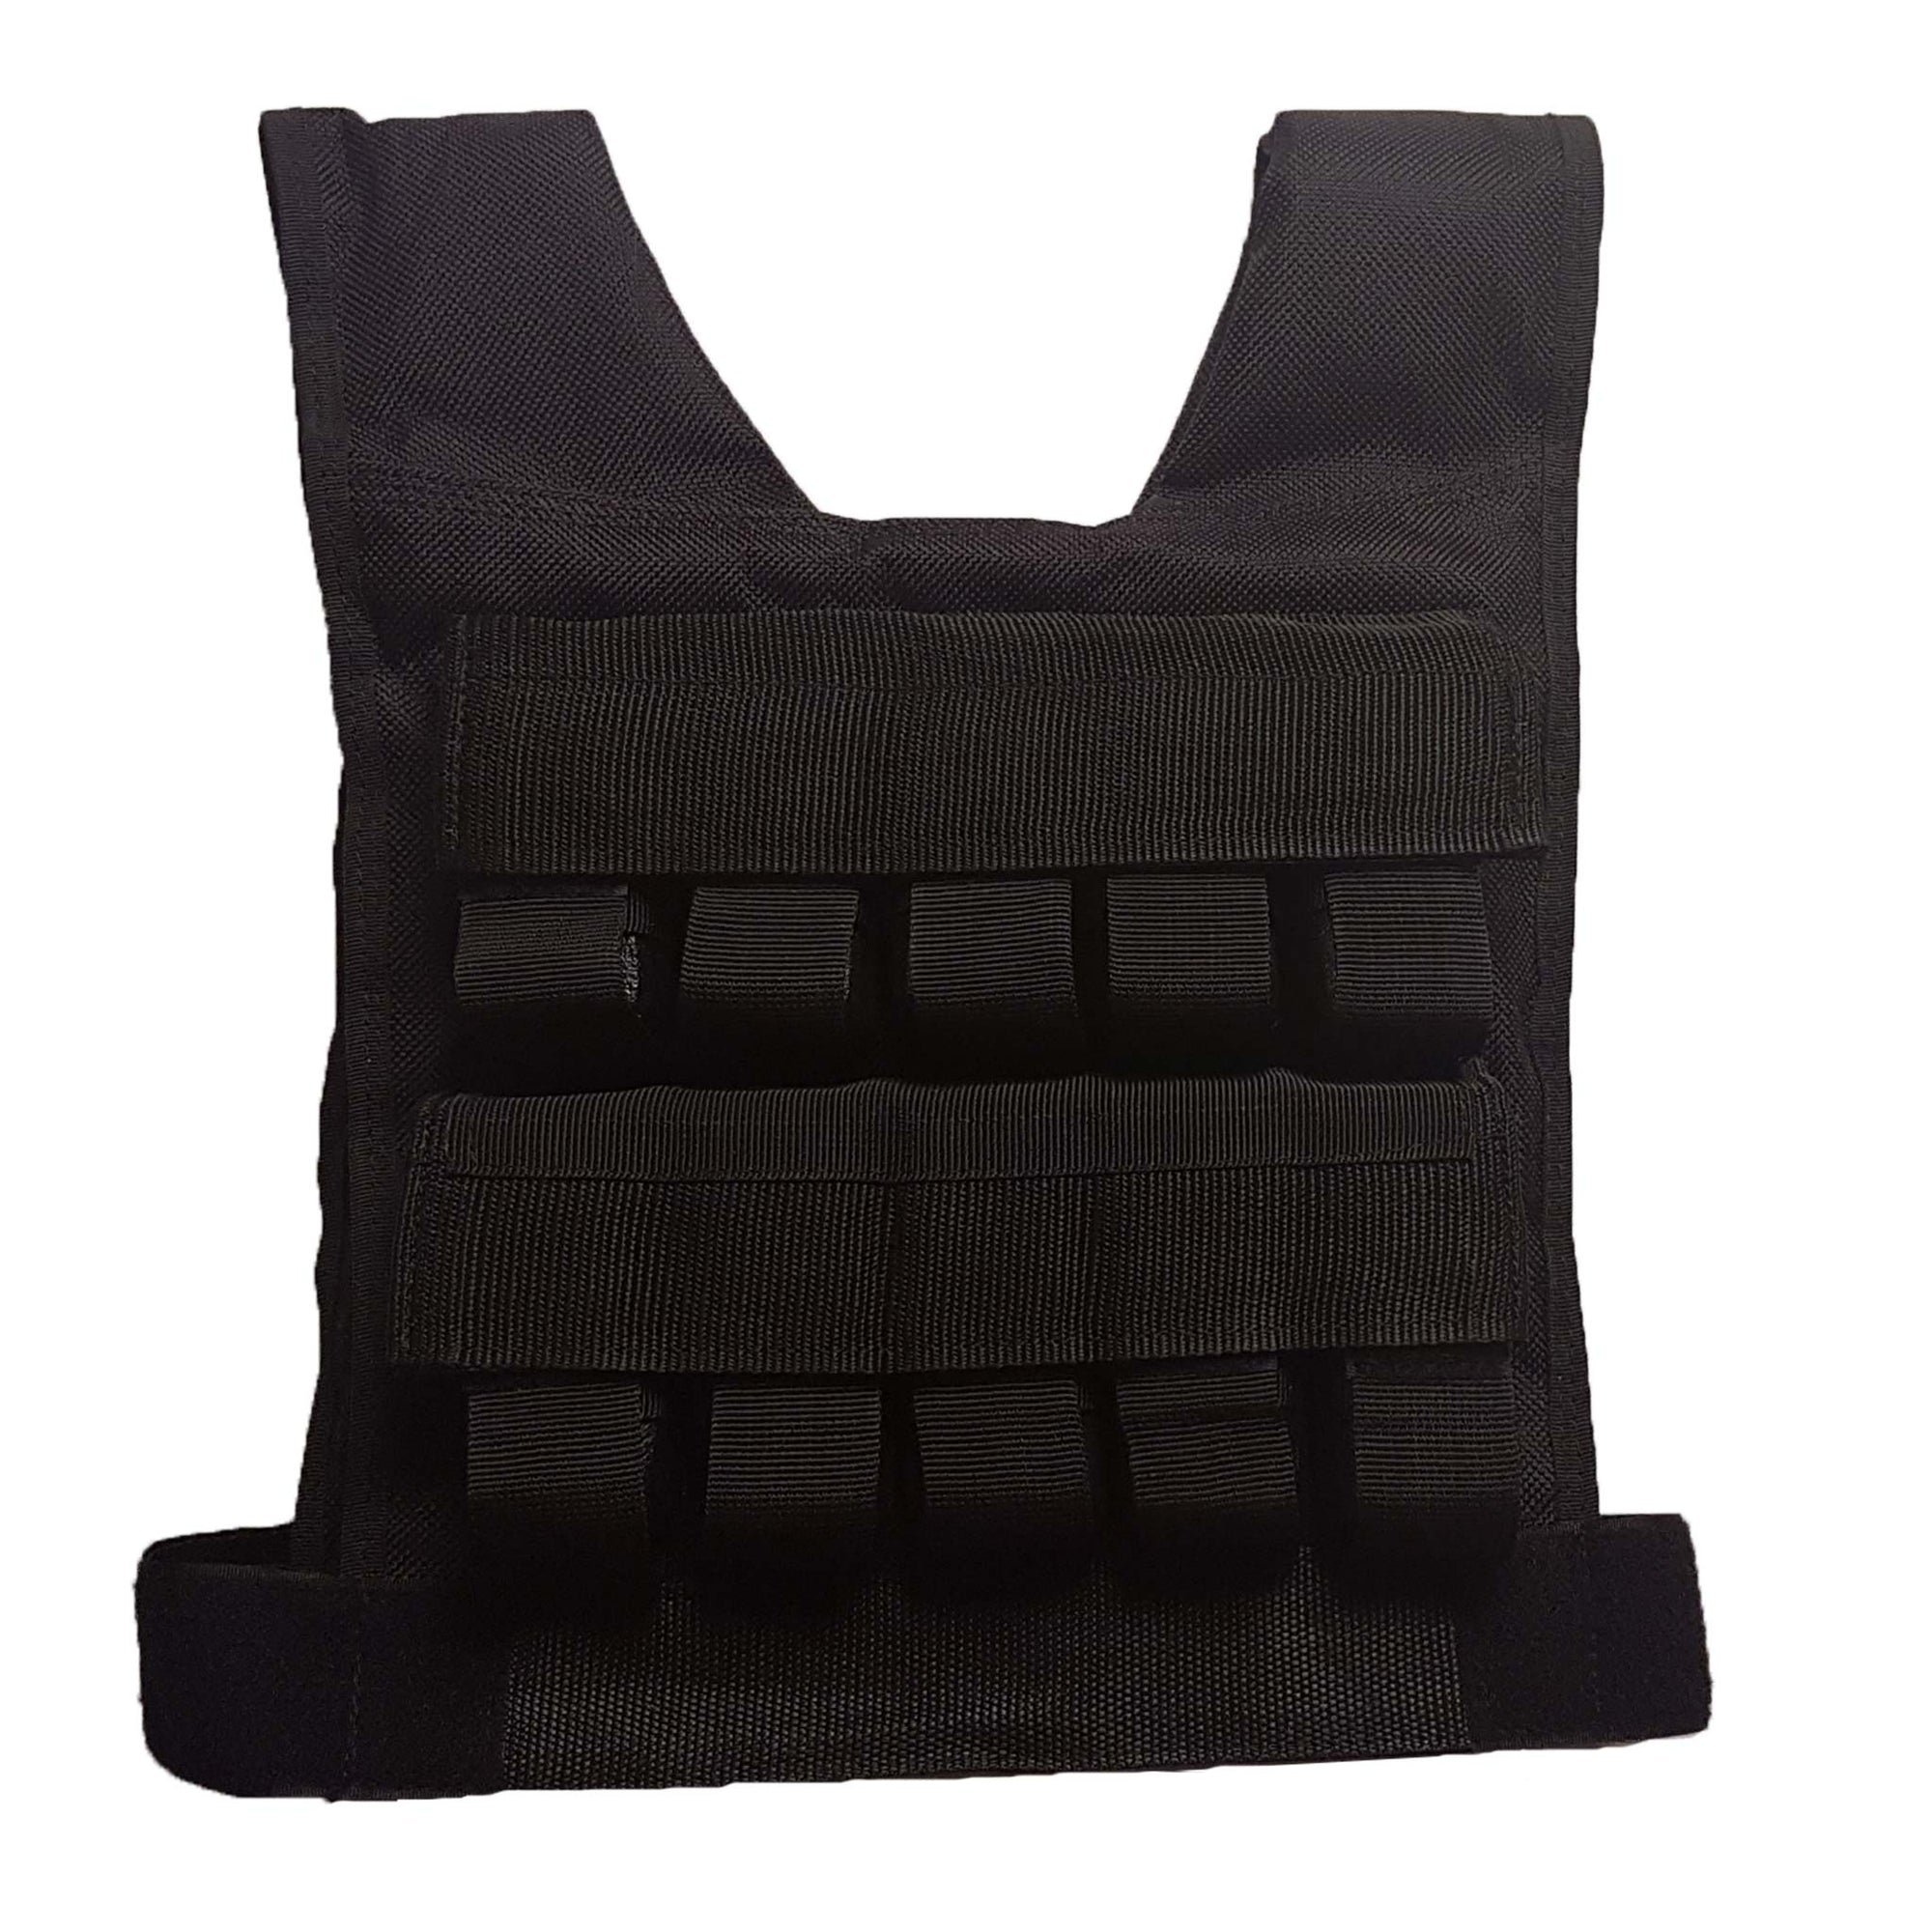 20kg Weighted Vest - Adjustable Weight Training Jacket